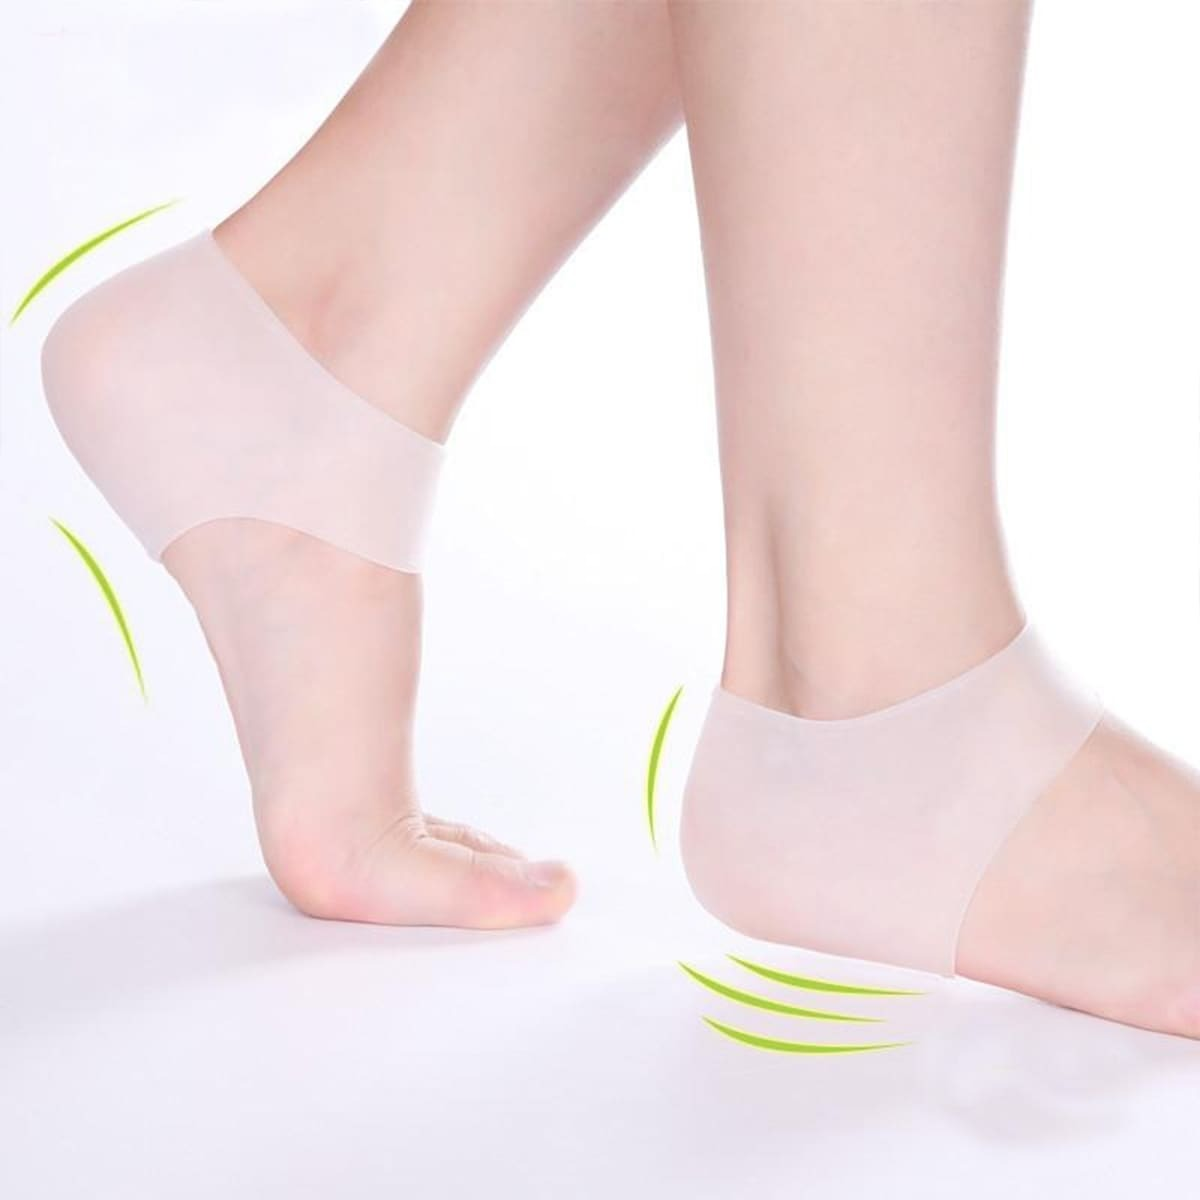 SHEIN coupon: Silicone Heel Protector 1pair